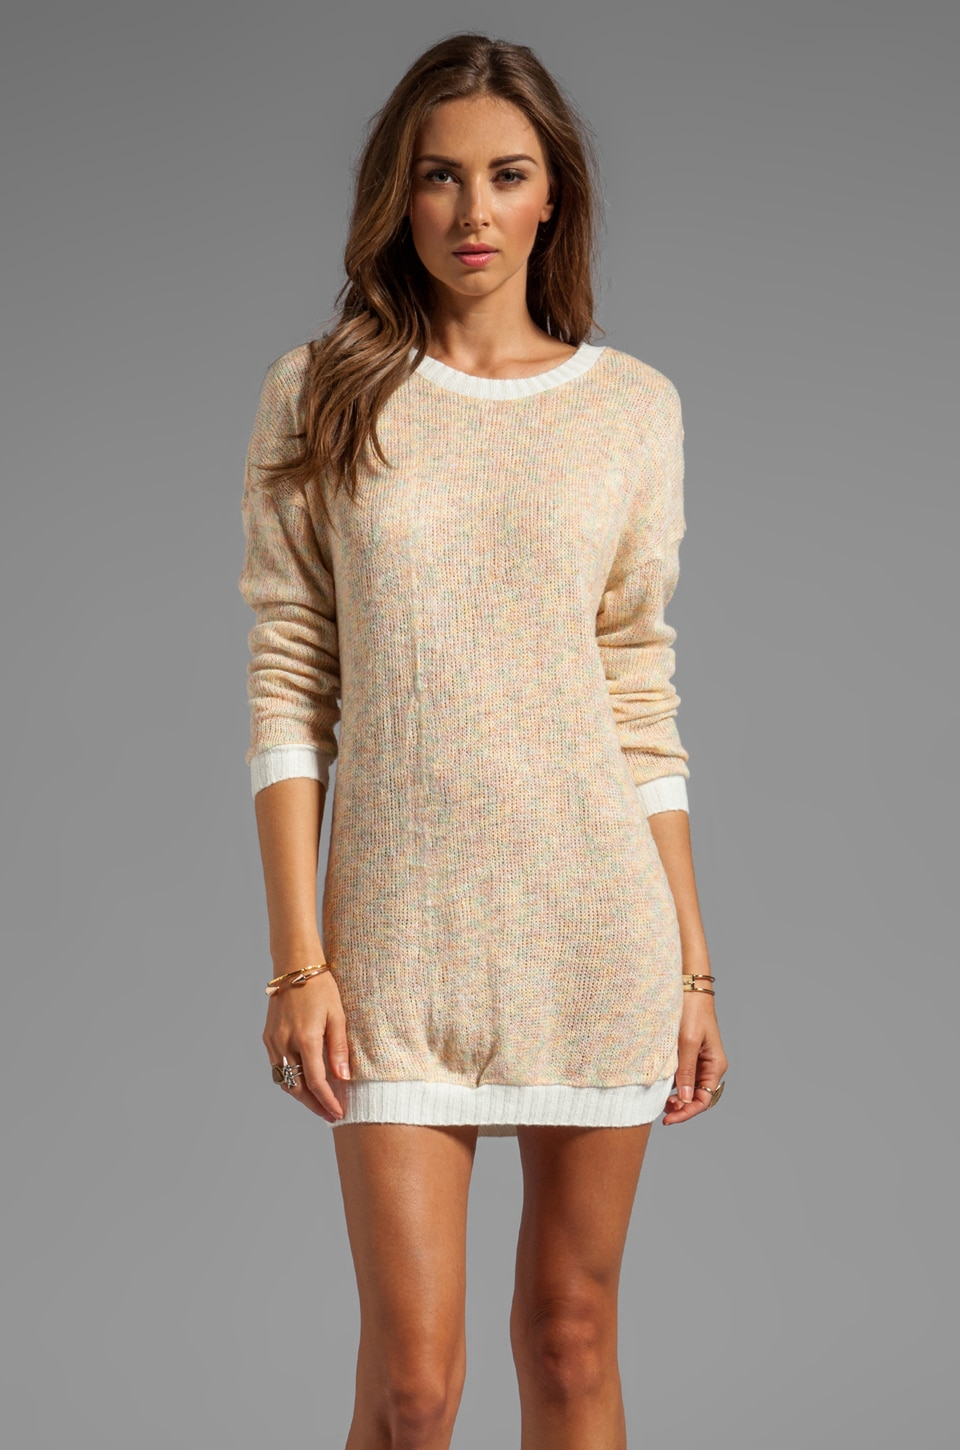 Funktional Spectrum Tunic Sweater in Live